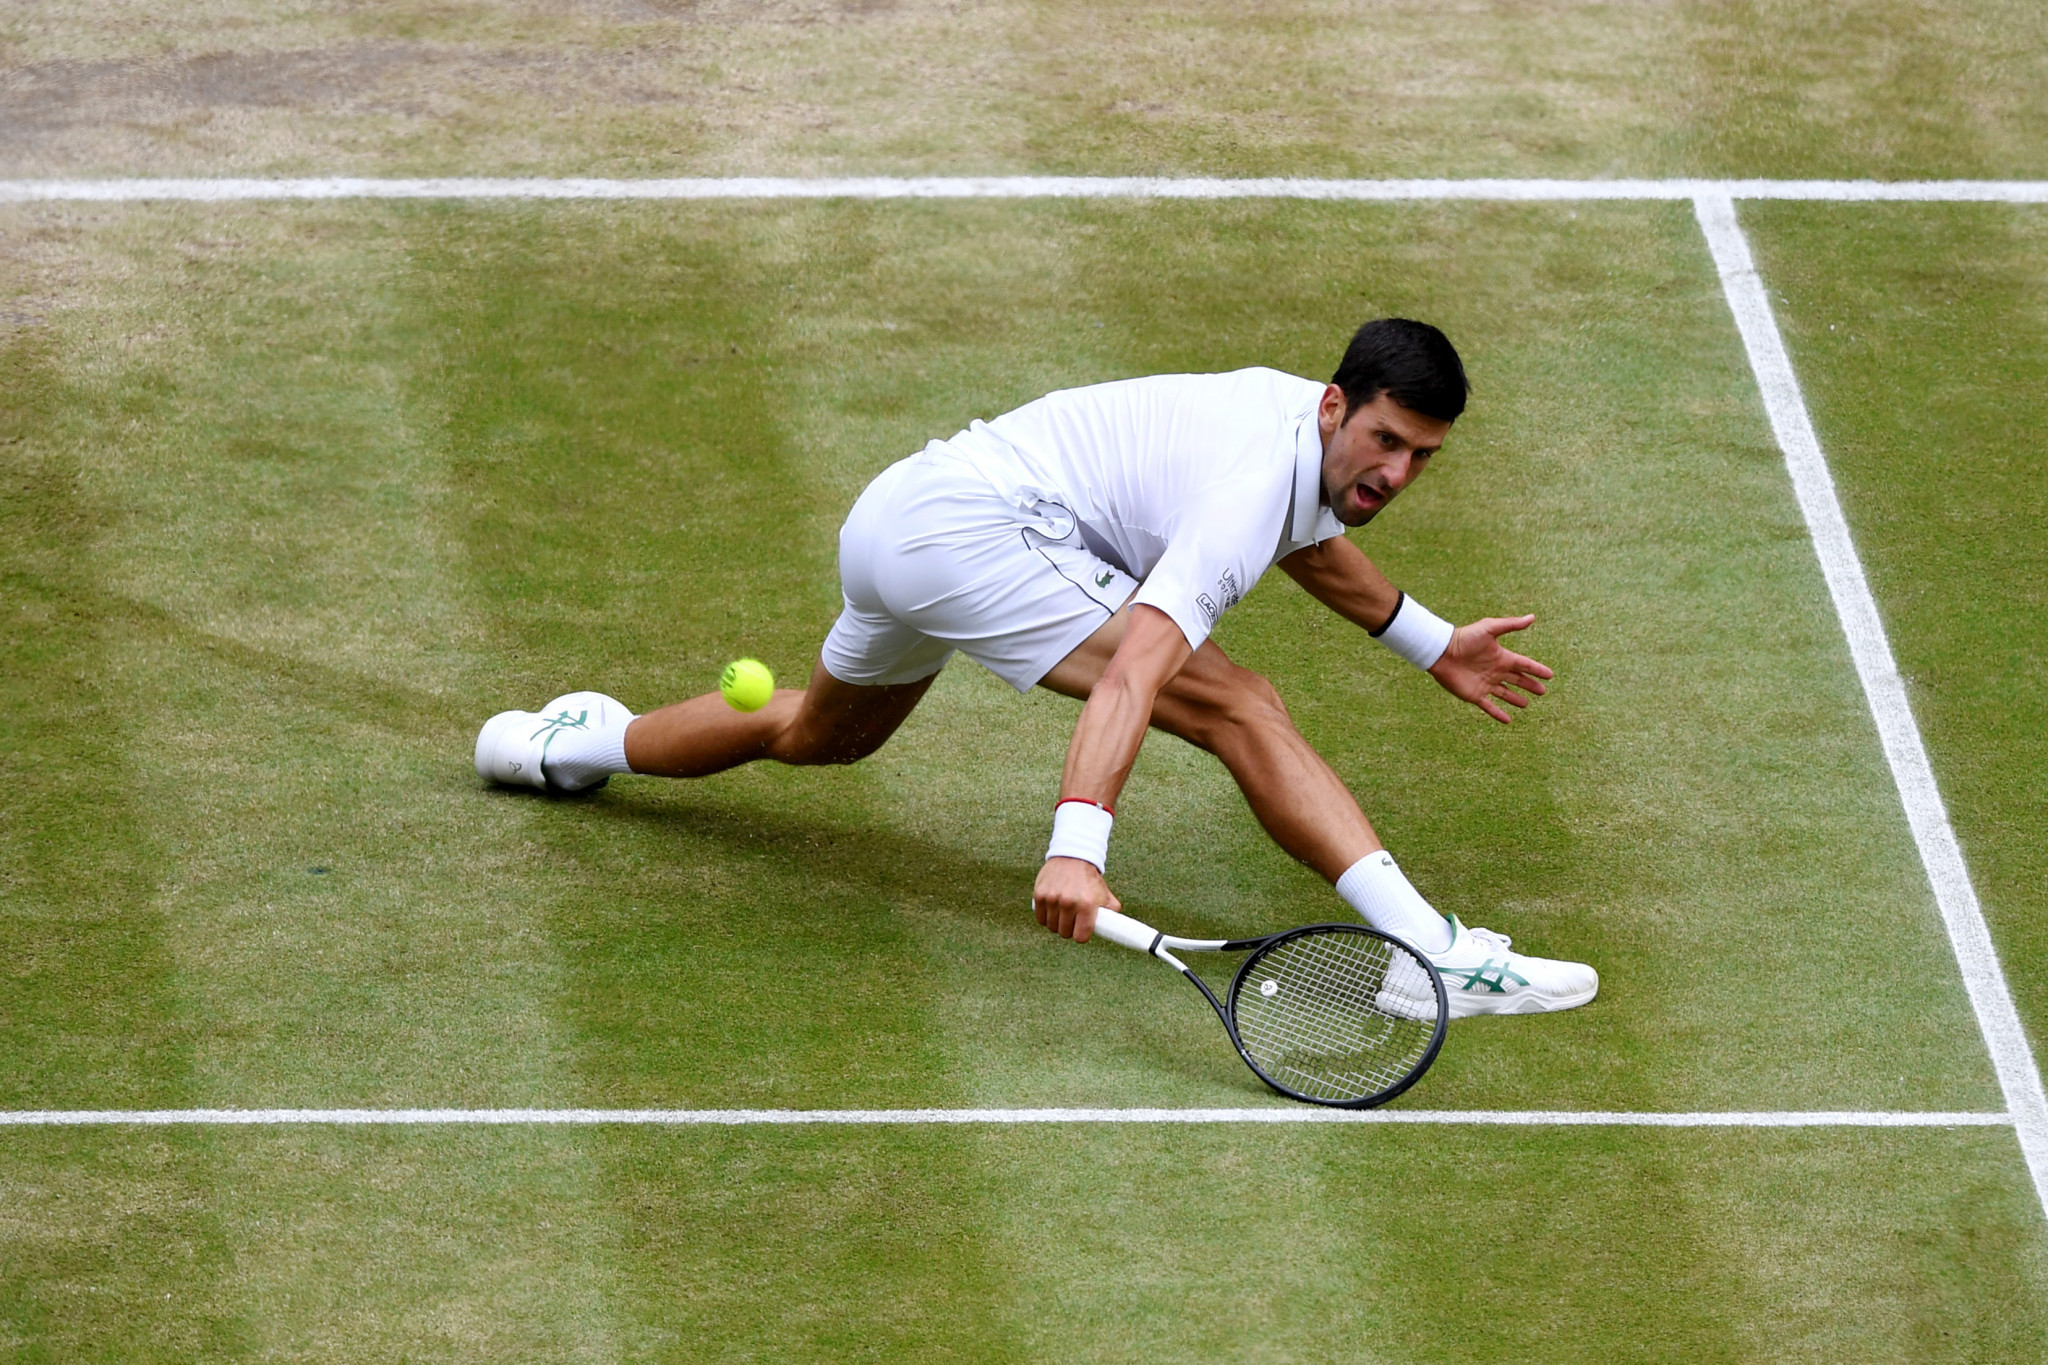 Djokovic was at full stretch to make this particular backhand ©Getty Images